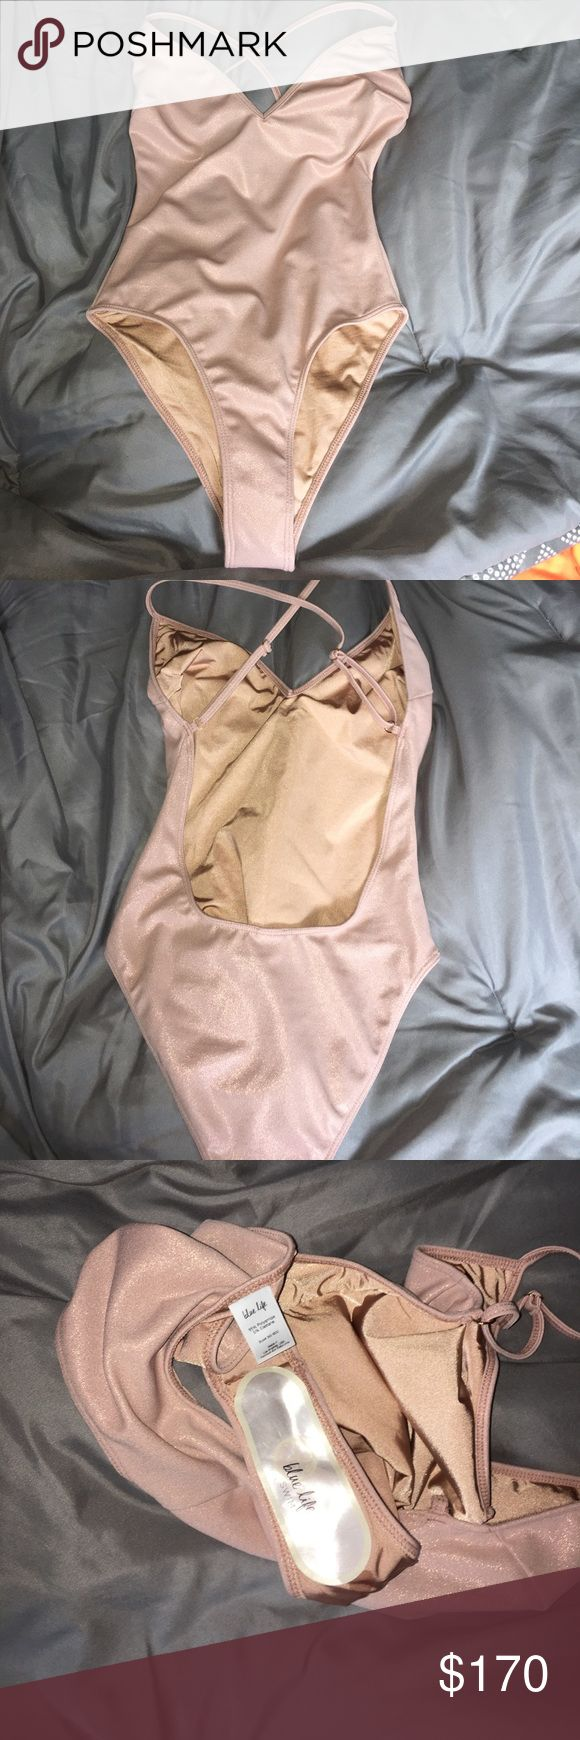 Blue life bikini & black one piece Open back nude 1 piece. Never worn brand new! Completely SOLD OUT!! Throwing in another one piece! 2 for 1 price. The black is brand new unbranded. If your interested I can work with u on the price Blue Life Swim One Pieces